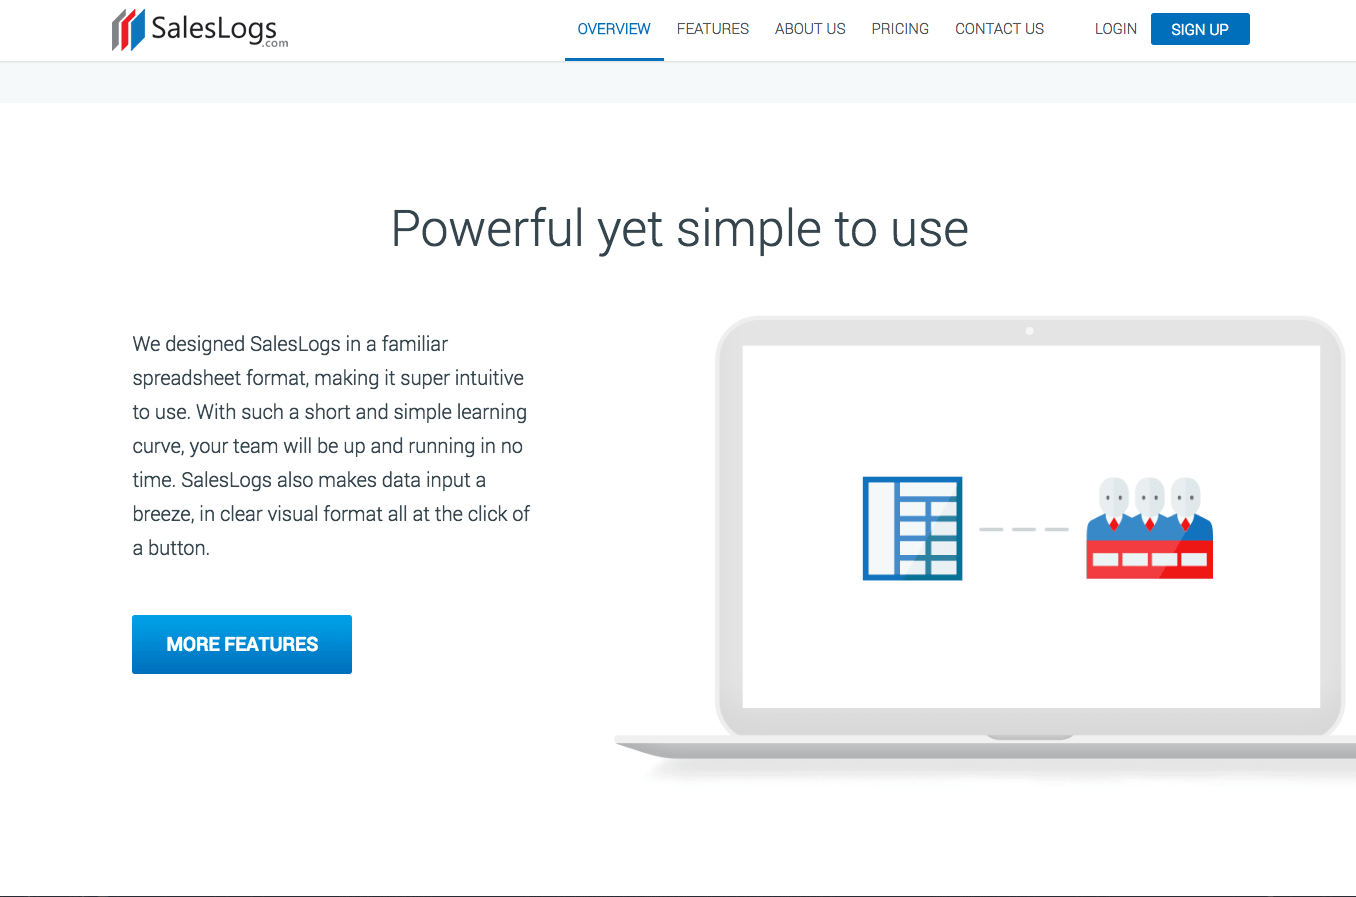 saleslogs-home-page-copy-5-min